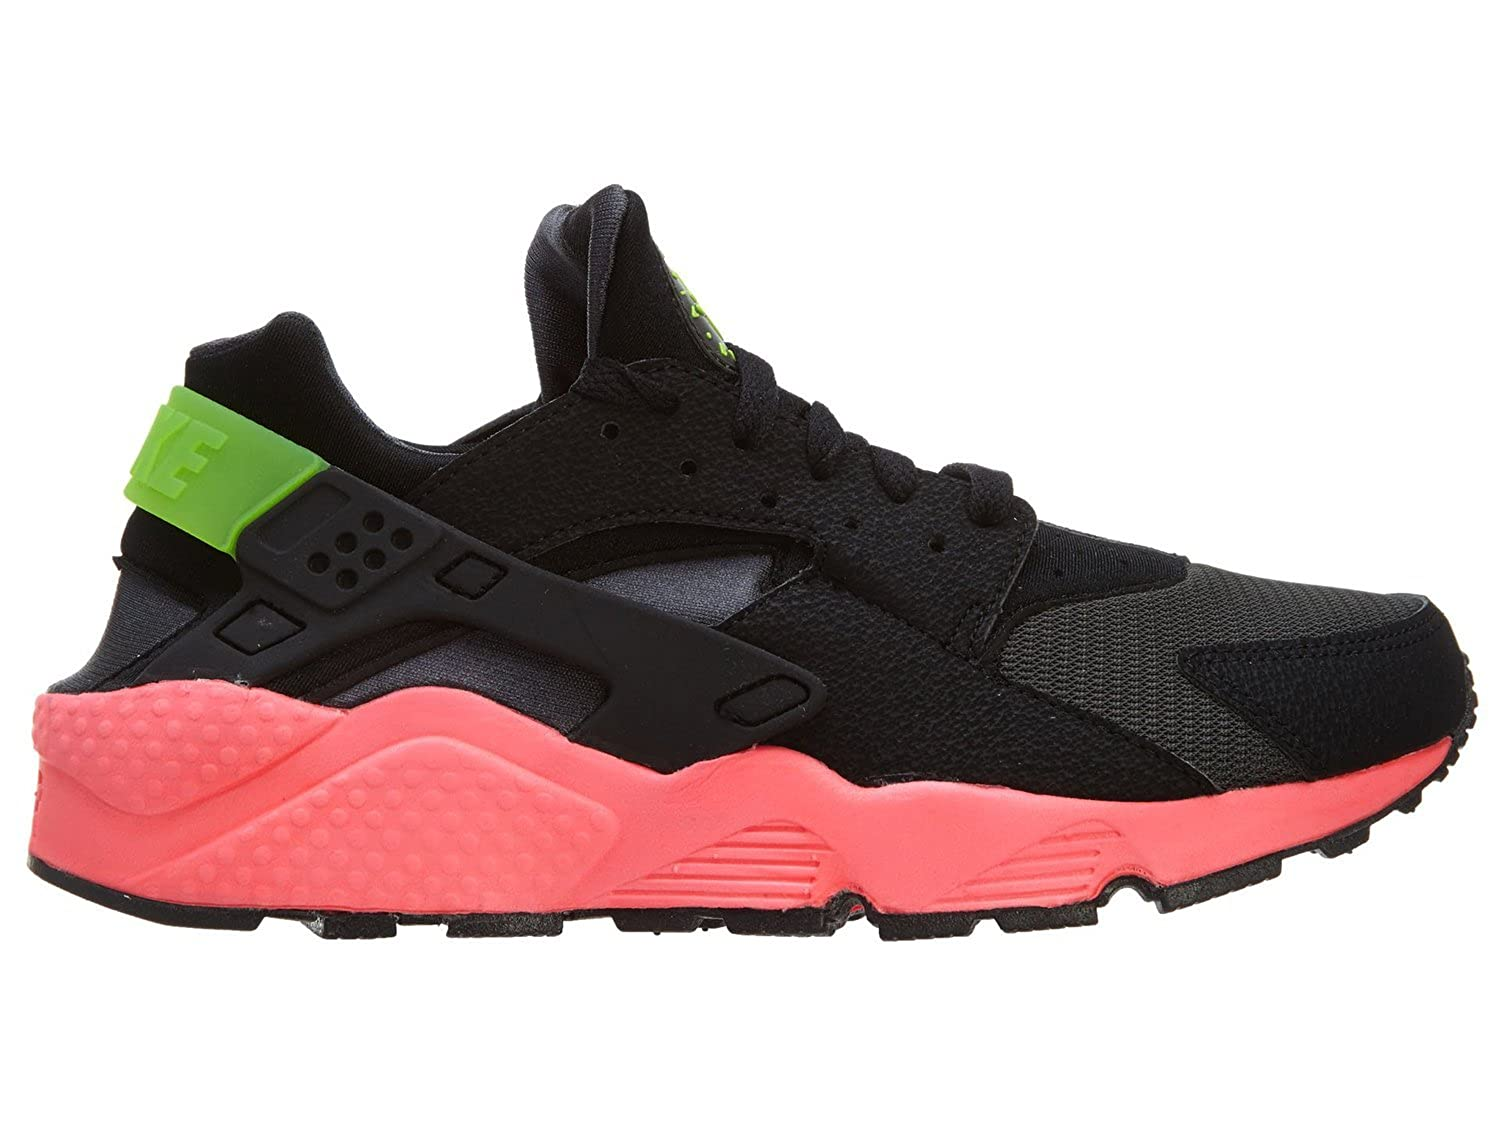 b27faddca281 Nike Men s - Air Huarache  RARE  Anthracite Black-Hyper Punch-Electric  Green  Amazon.co.uk  Shoes   Bags